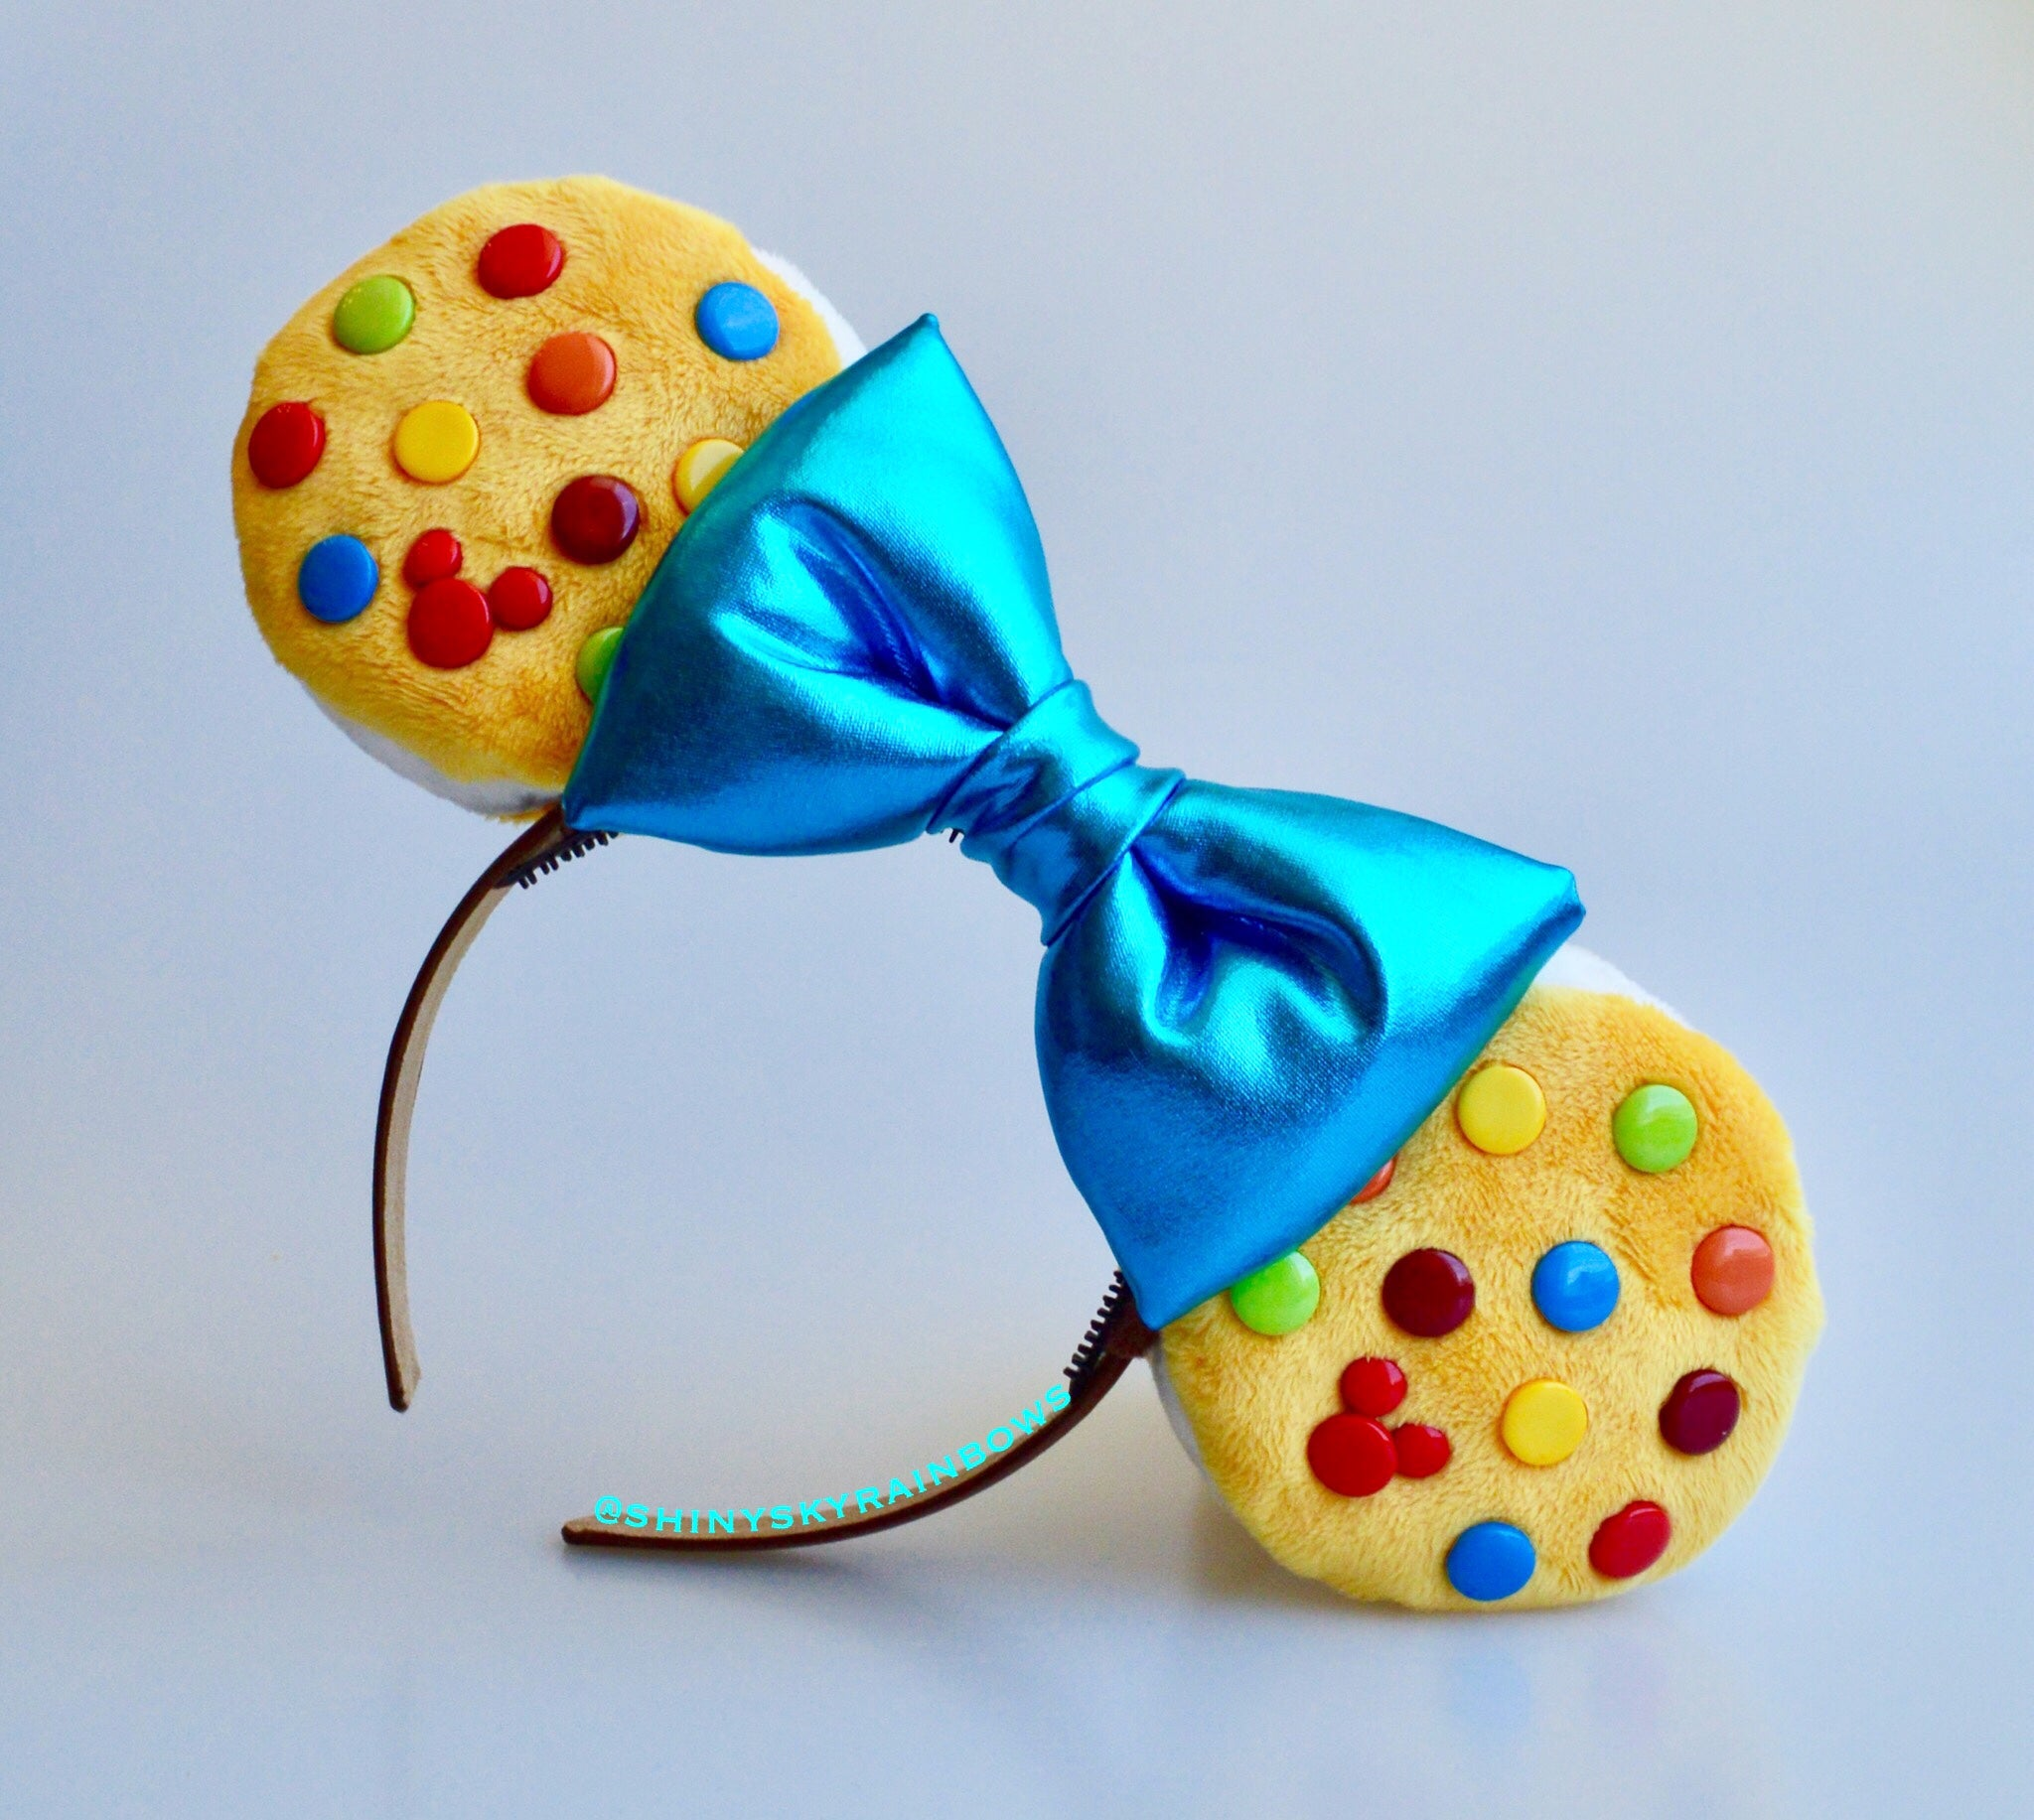 (Coming soon, February 23rd at 8pm EST/ 5pm PST) Colorful  Chocolate (buttons) Cookie Sandwich Ears with blue bow, Ice Cream Cookie Sandwitch Ears